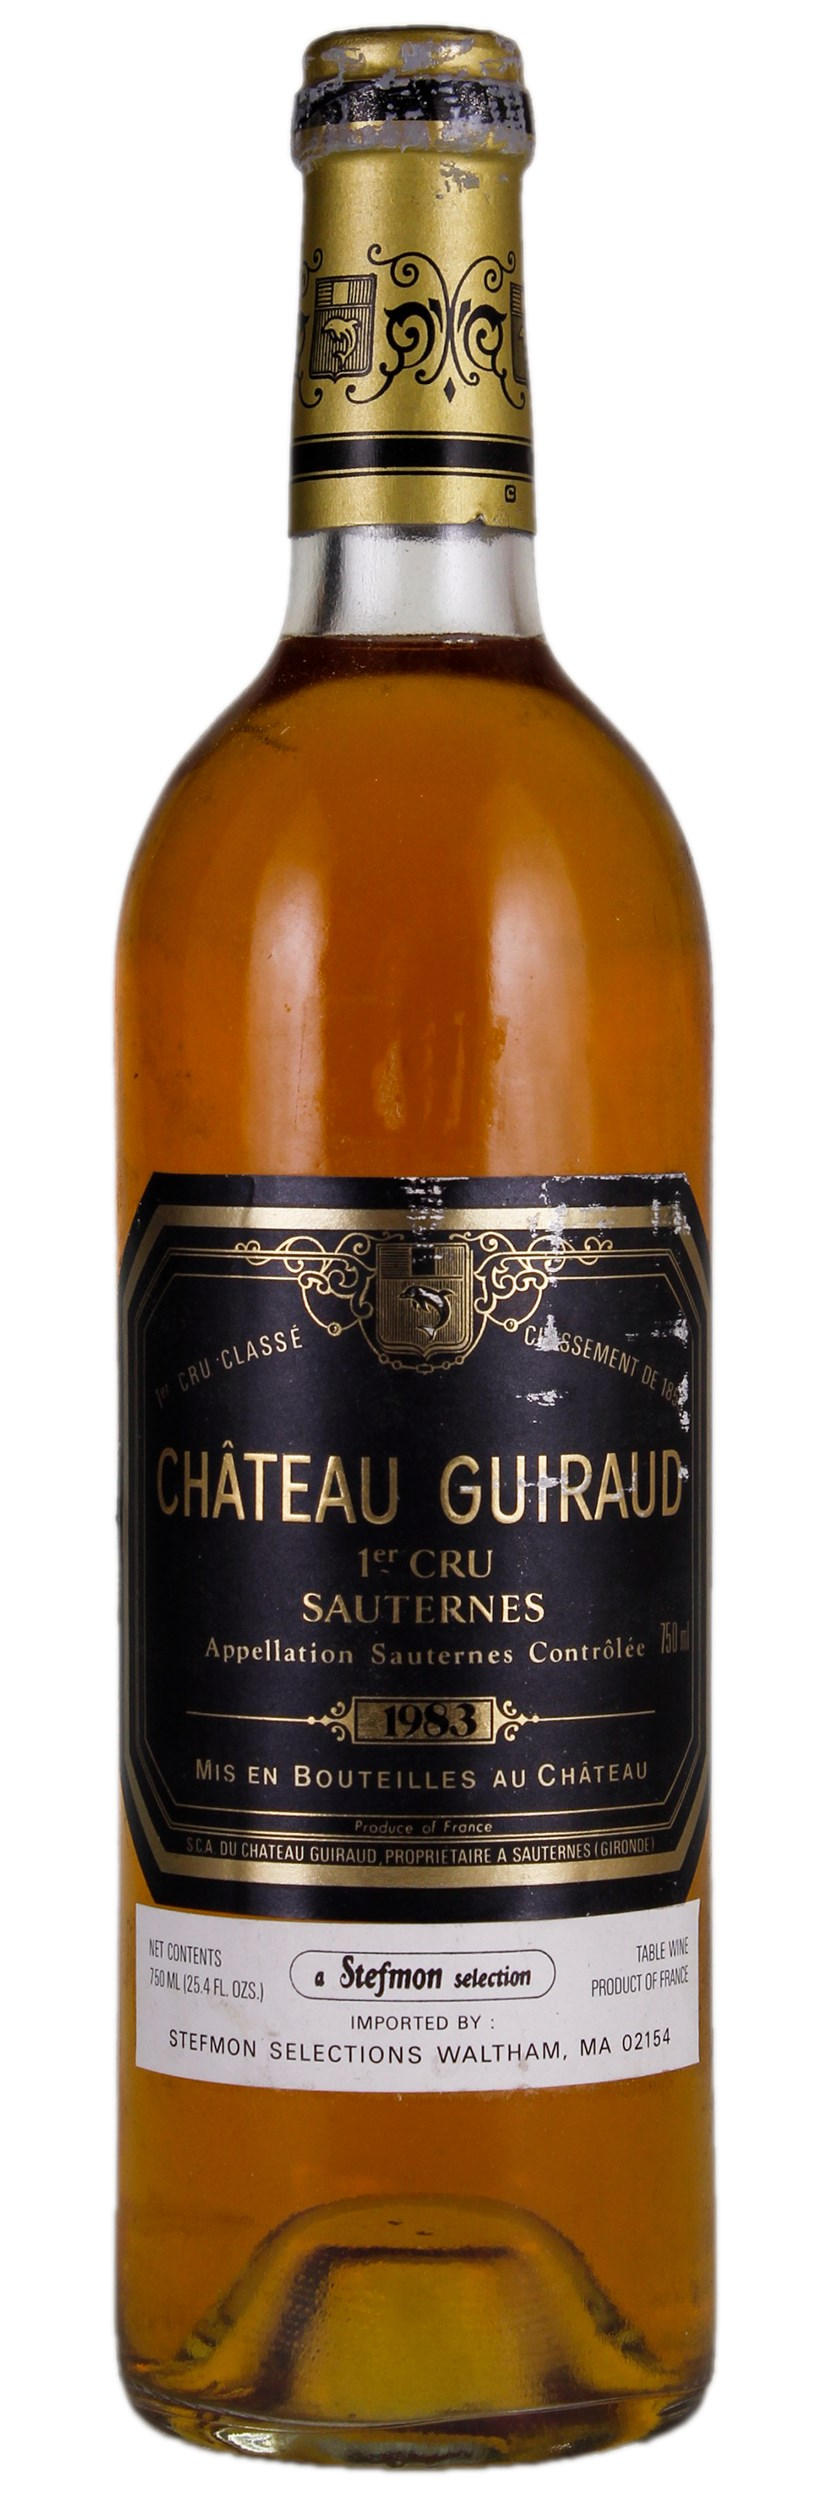 BuyWine Item Auction 23640 1983 Chateau Guiraud